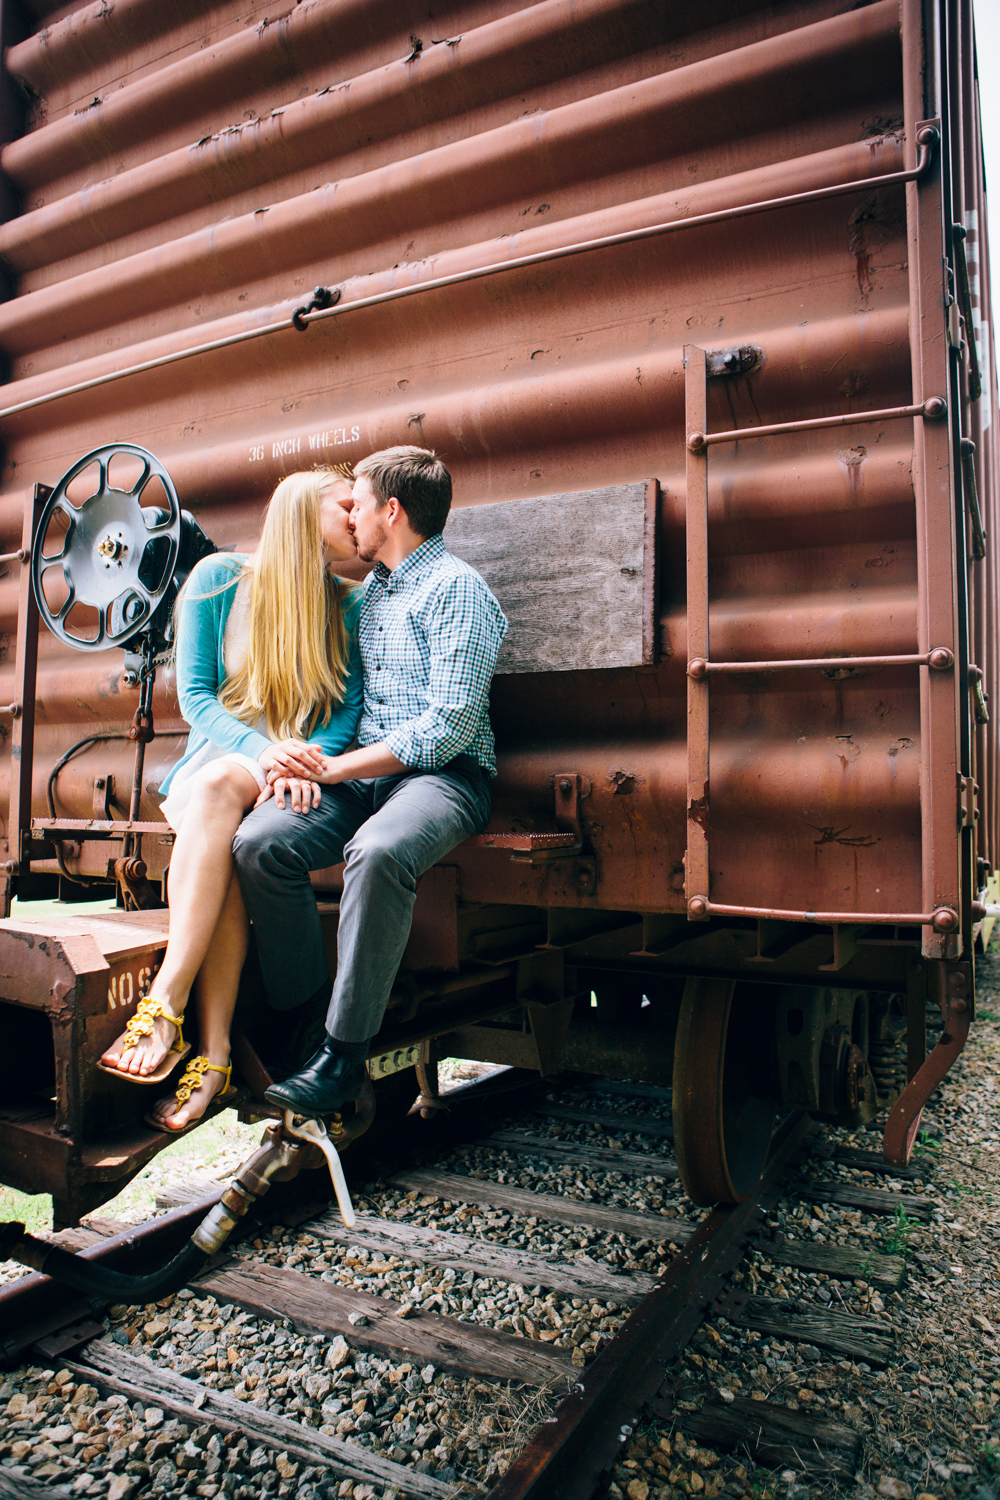 Emma_Brian_engagement_shoot-5.JPG